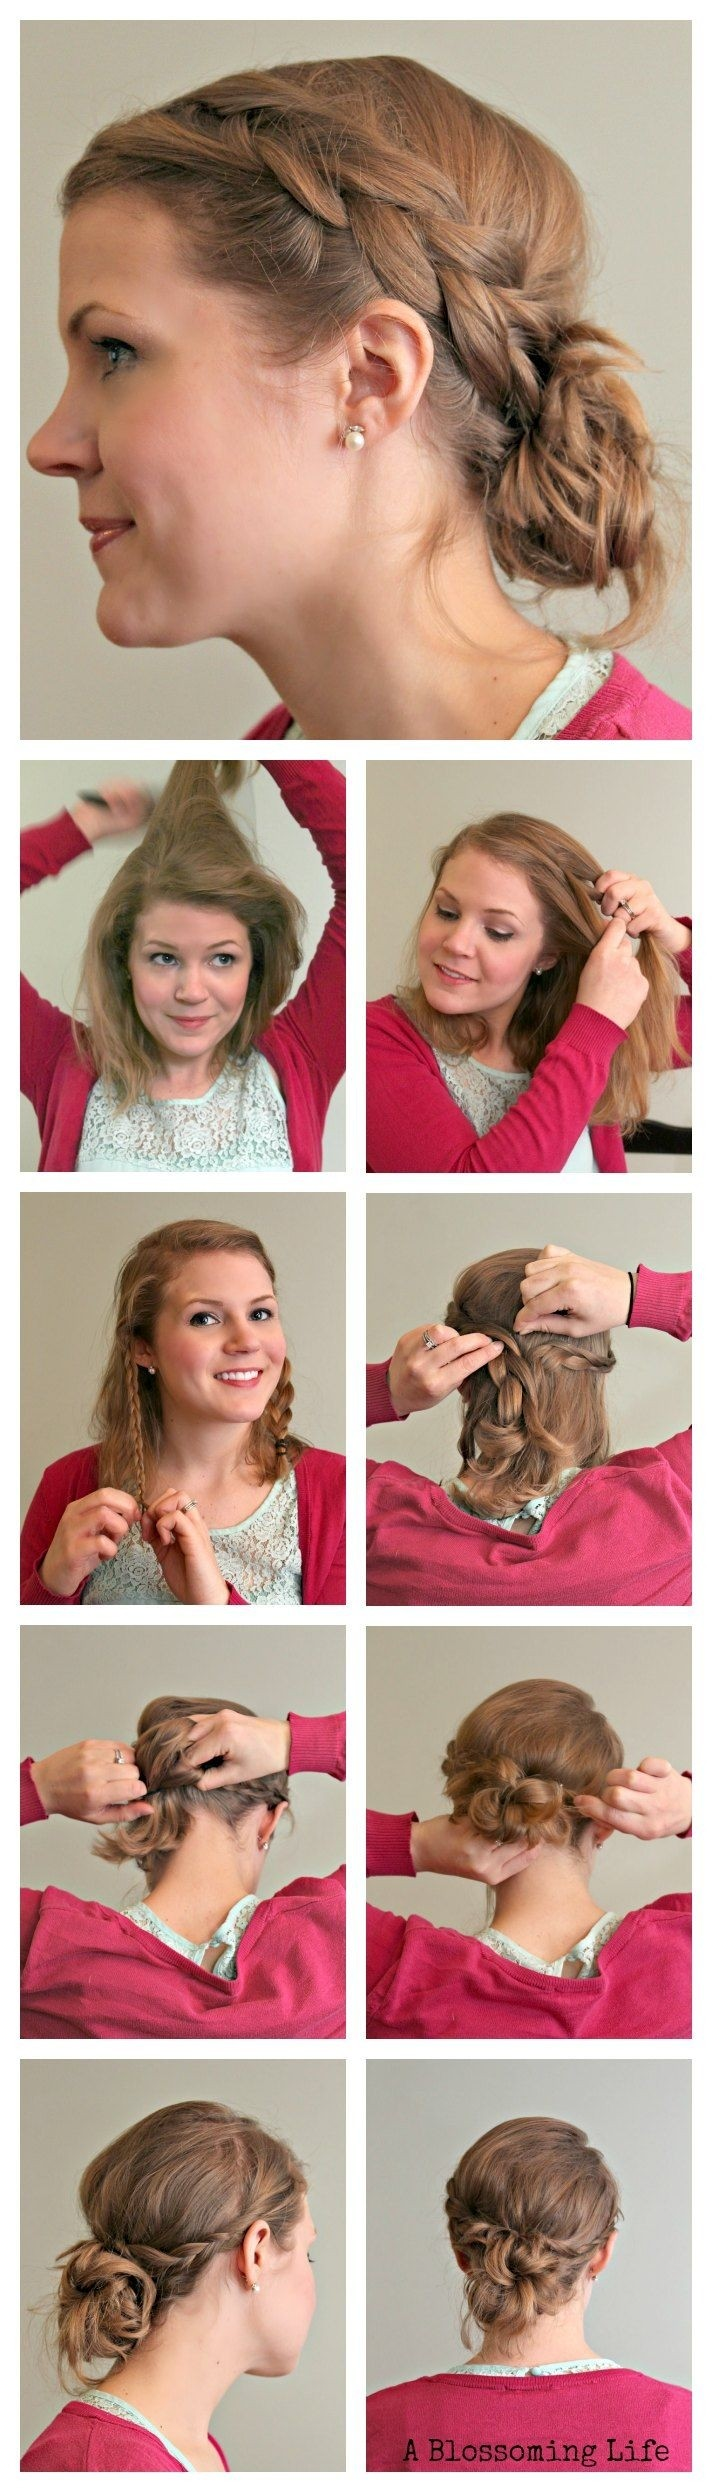 Wondrous 10 Simple Yet Stylish Updo Hairstyle Tutorials For All Occasions Hairstyle Inspiration Daily Dogsangcom